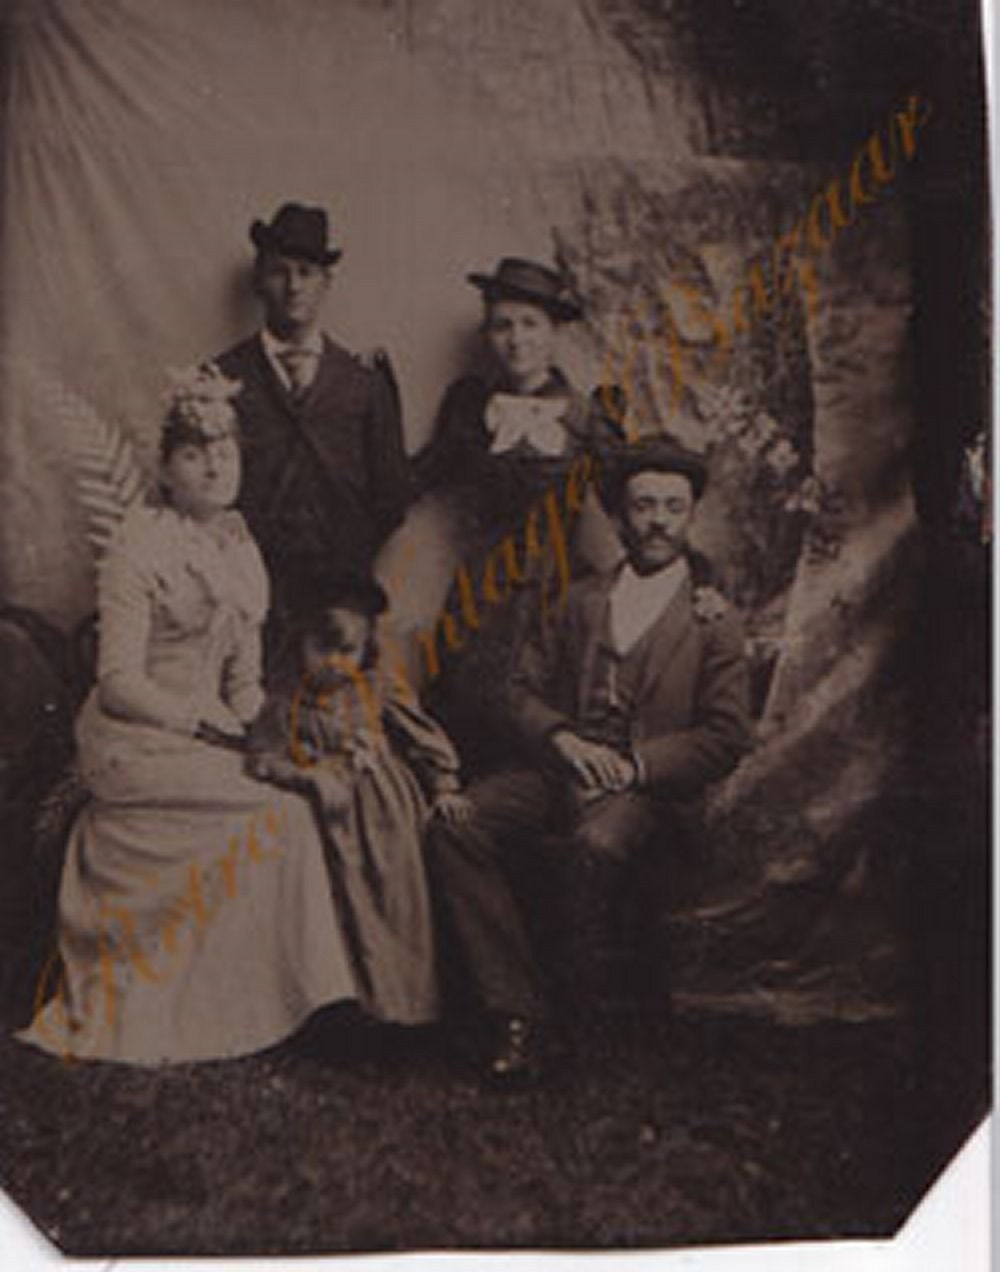 Tintype Photo Circa 1800s Family with Hats